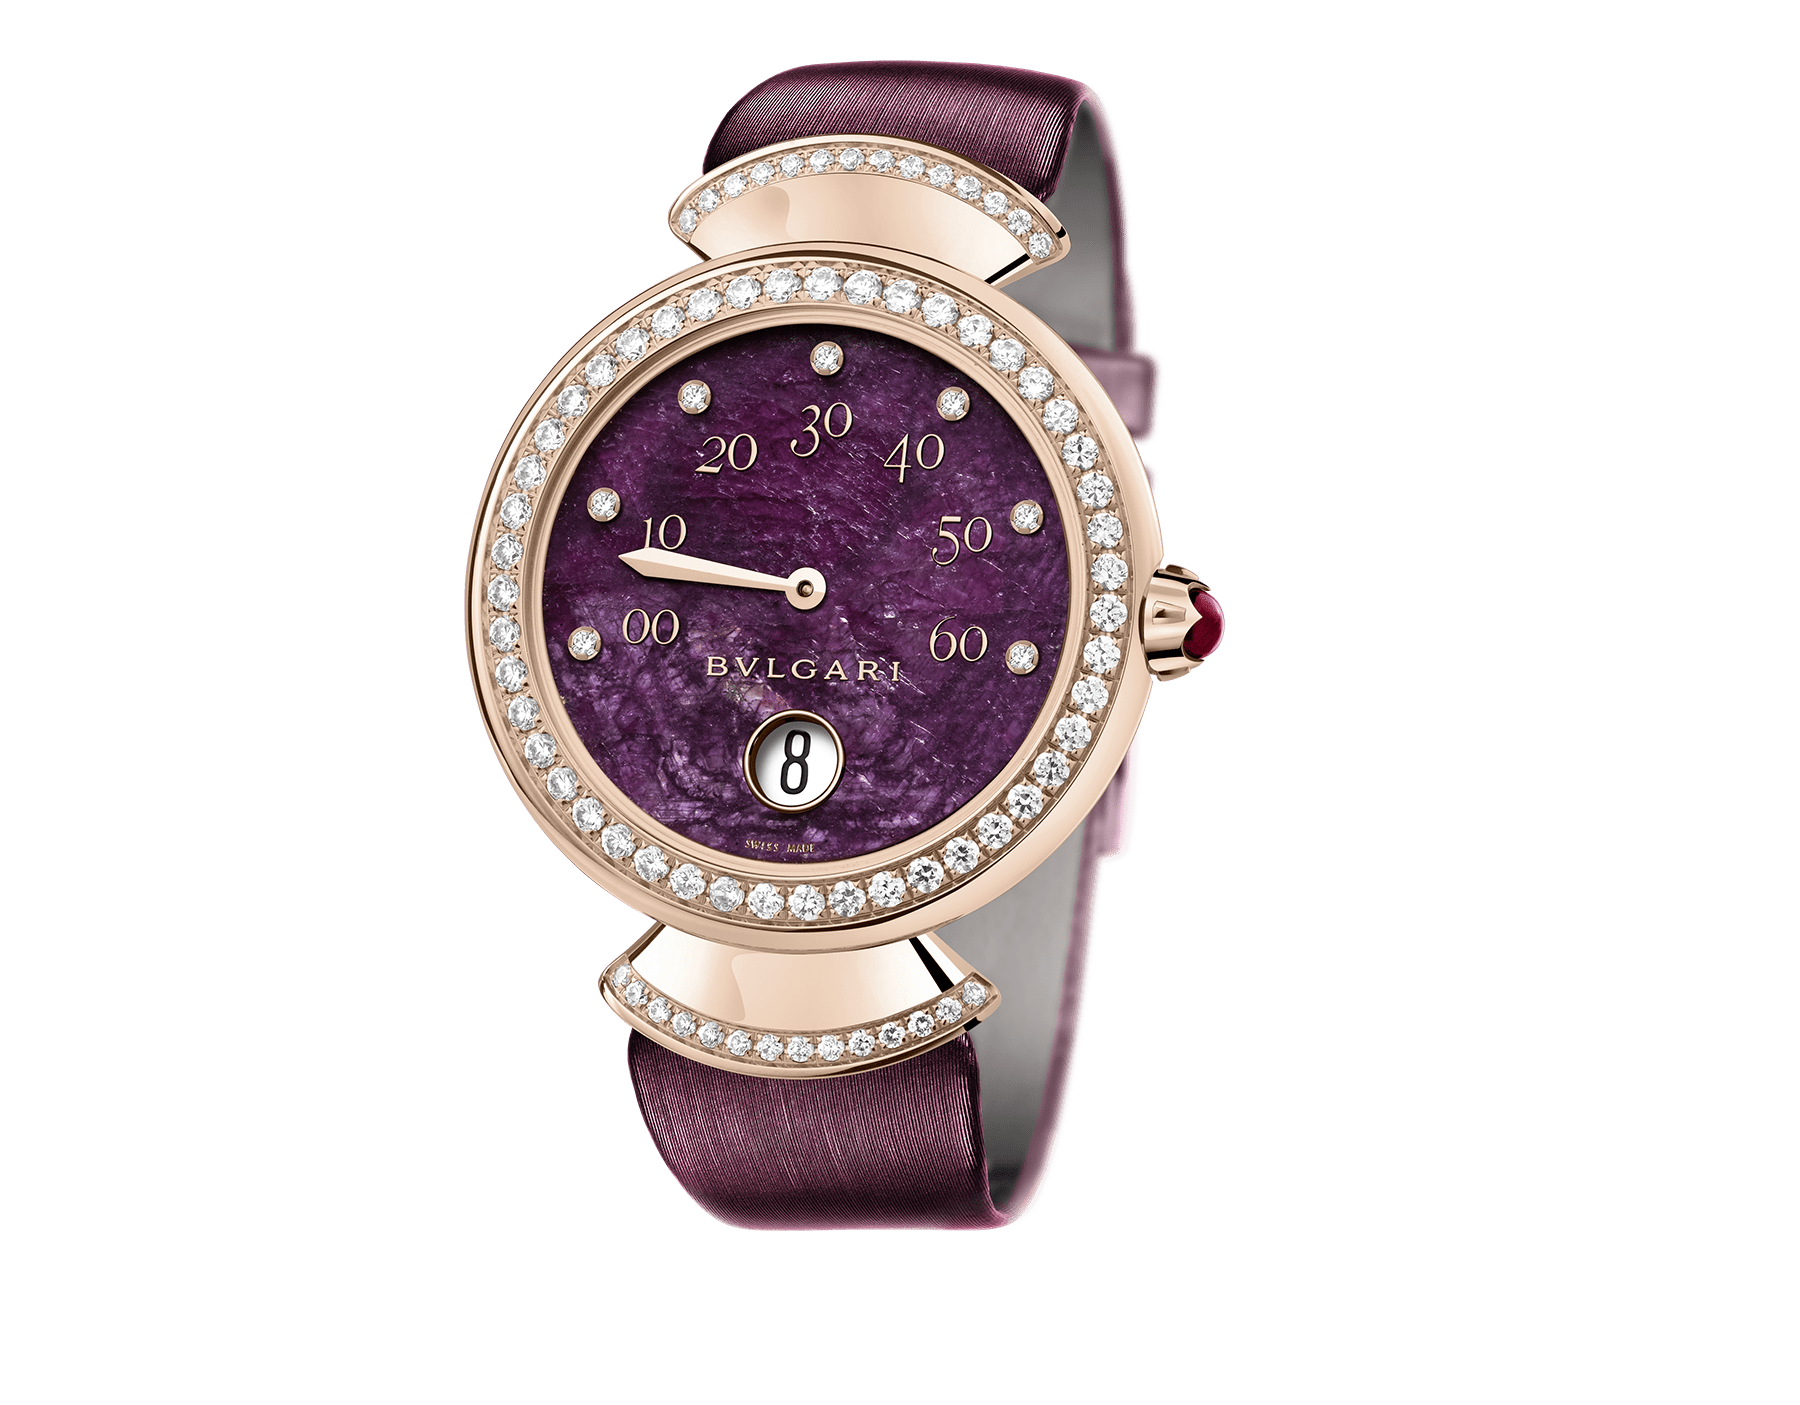 DIVAS' DREAM watch with mechanical manufacture movement, jumping hours, retrograde minutes (180°) and automatic winding. 18 kt rose gold case set with brilliant-cut diamonds, heart of ruby dial, diamond indexes and violet satin bracelet 102545 image 1